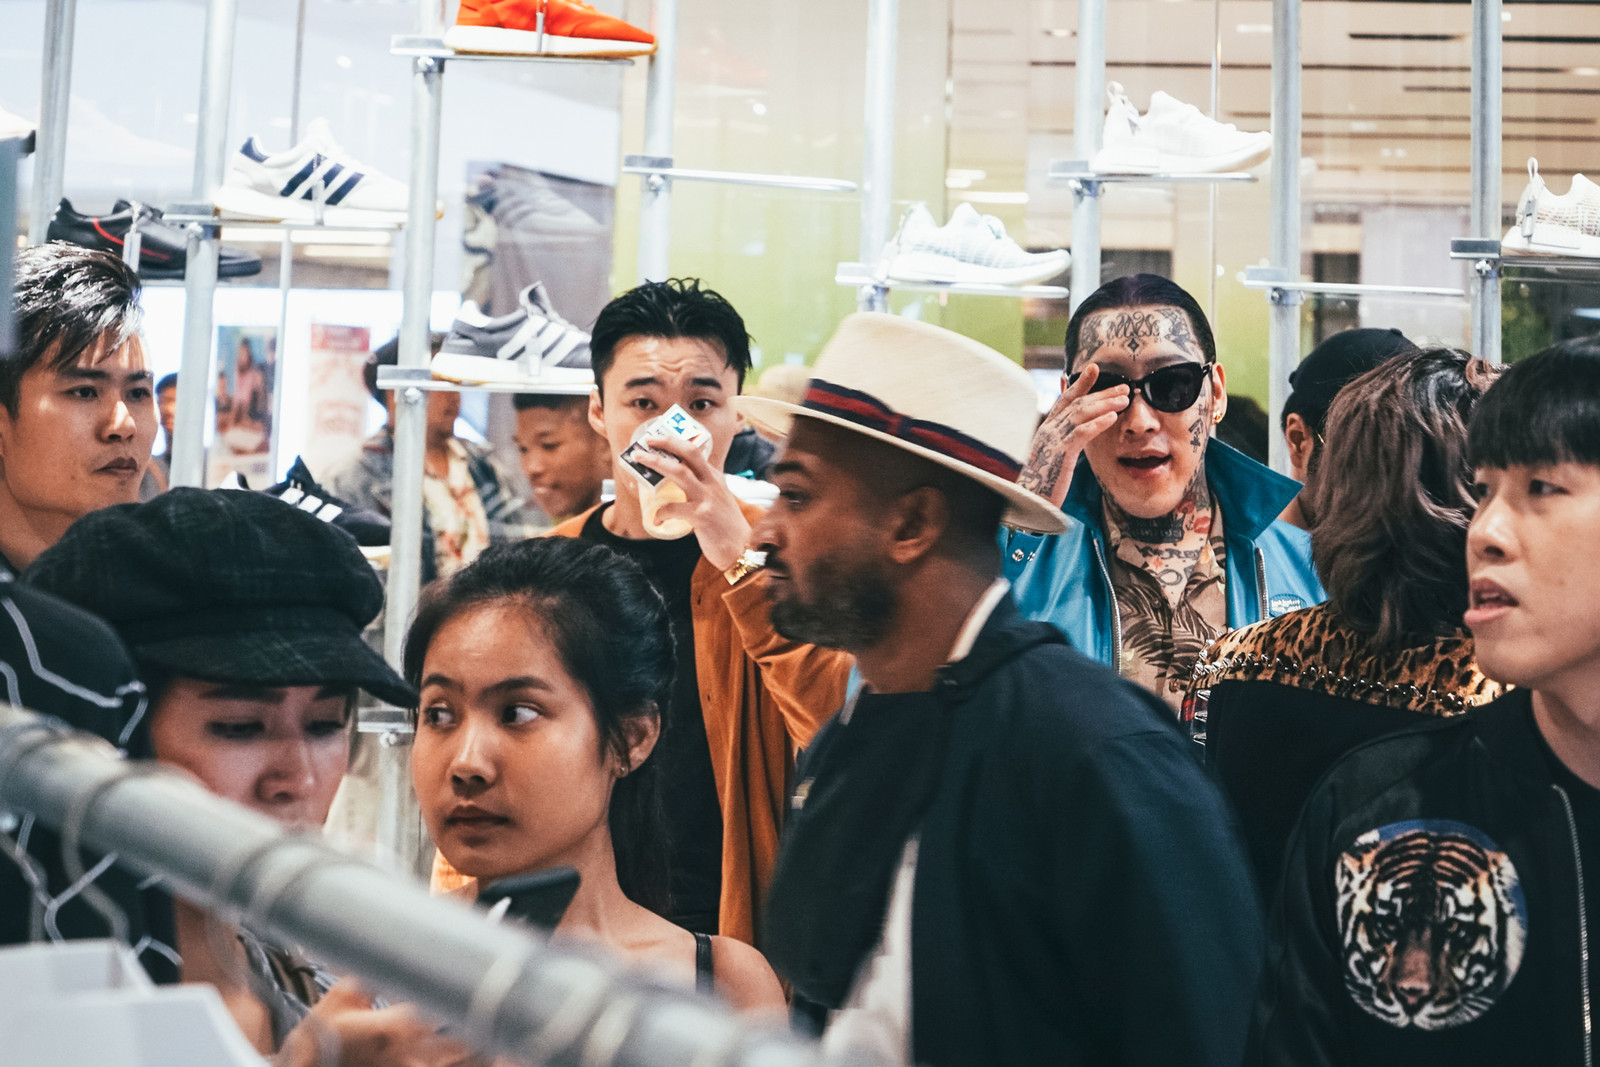 UPPERGROUND CentralWorld Flagship Opening Recap Thailand Bangkok Streetwear Street Fashion Carnival FR2 YIB Youths in Balaclava Chaotic Surf is Dead Takara Wong Poliquant Magic Stick Blackbarrett WVS Indigoskin SSAP